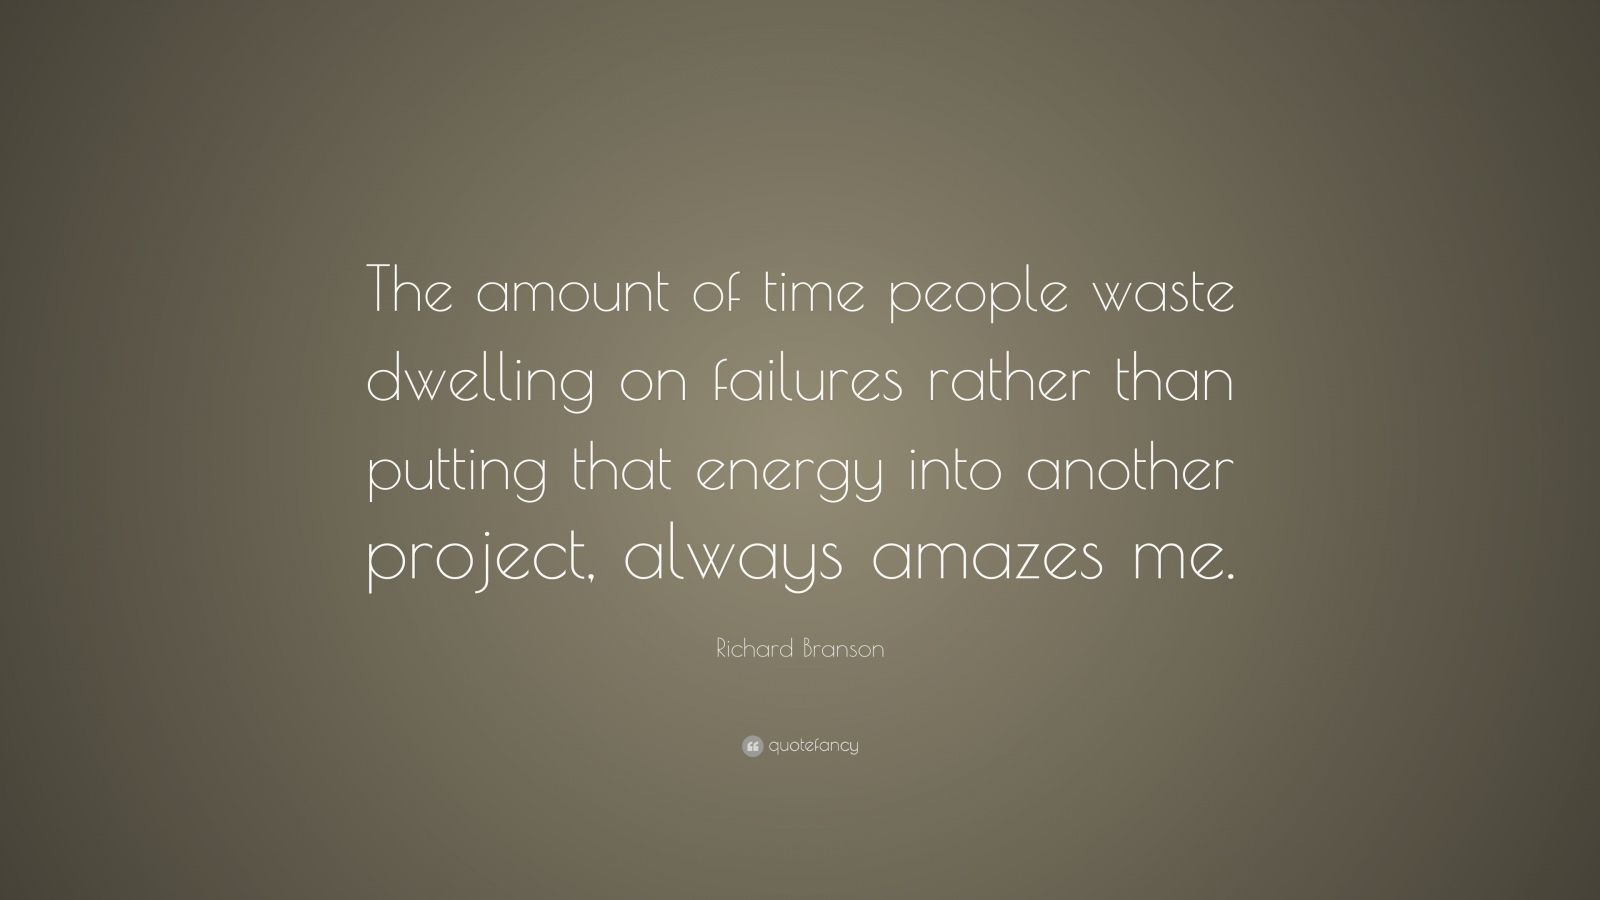 """Richard Branson Quote: """"The amount of time people waste dwelling on failures rather than putting that energy into another project, always amazes me."""""""